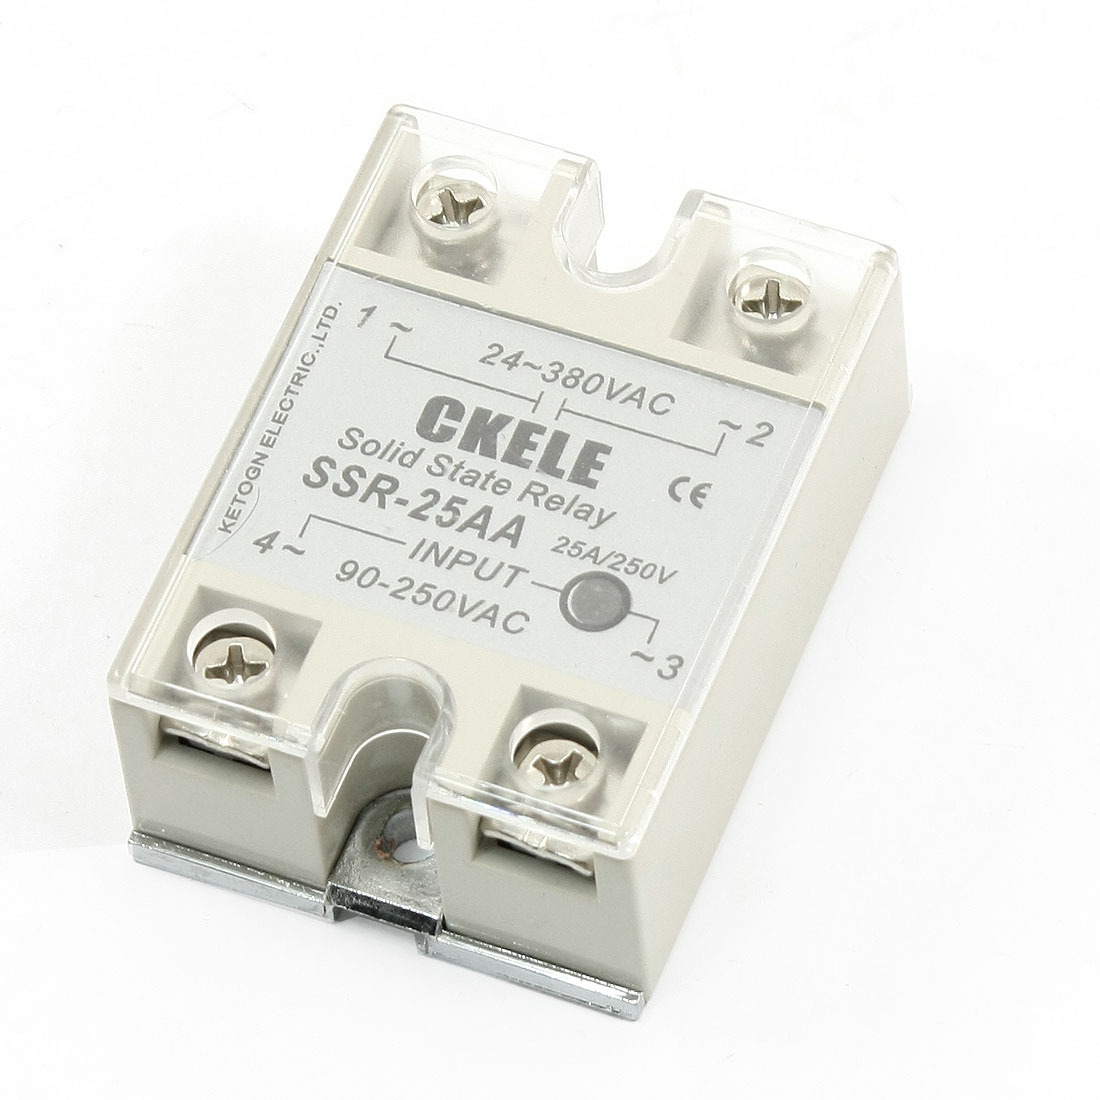 AC 24-380V to AC 90-250V Single Phase Solid State Relay SSR-25AA Model